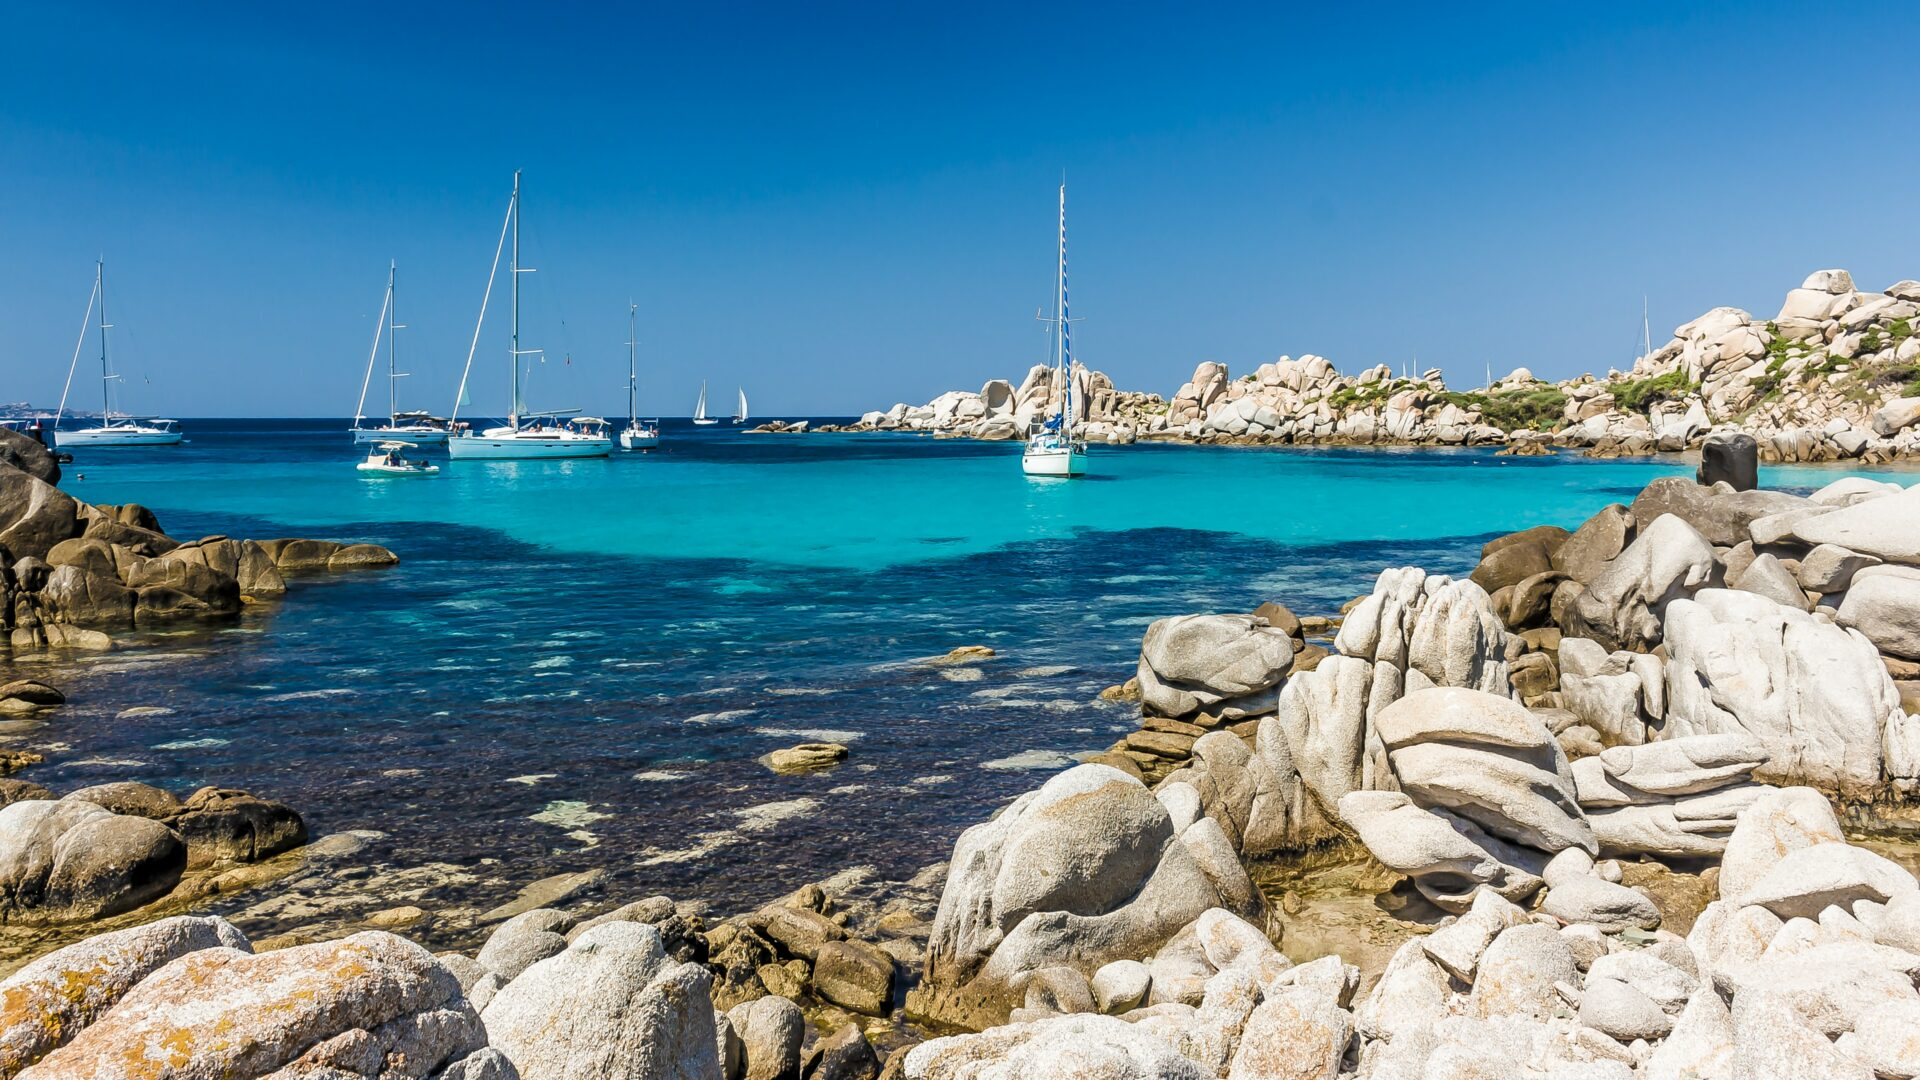 Photo of sailing boats anchored in a small cove in Corsica with beautiful clear water